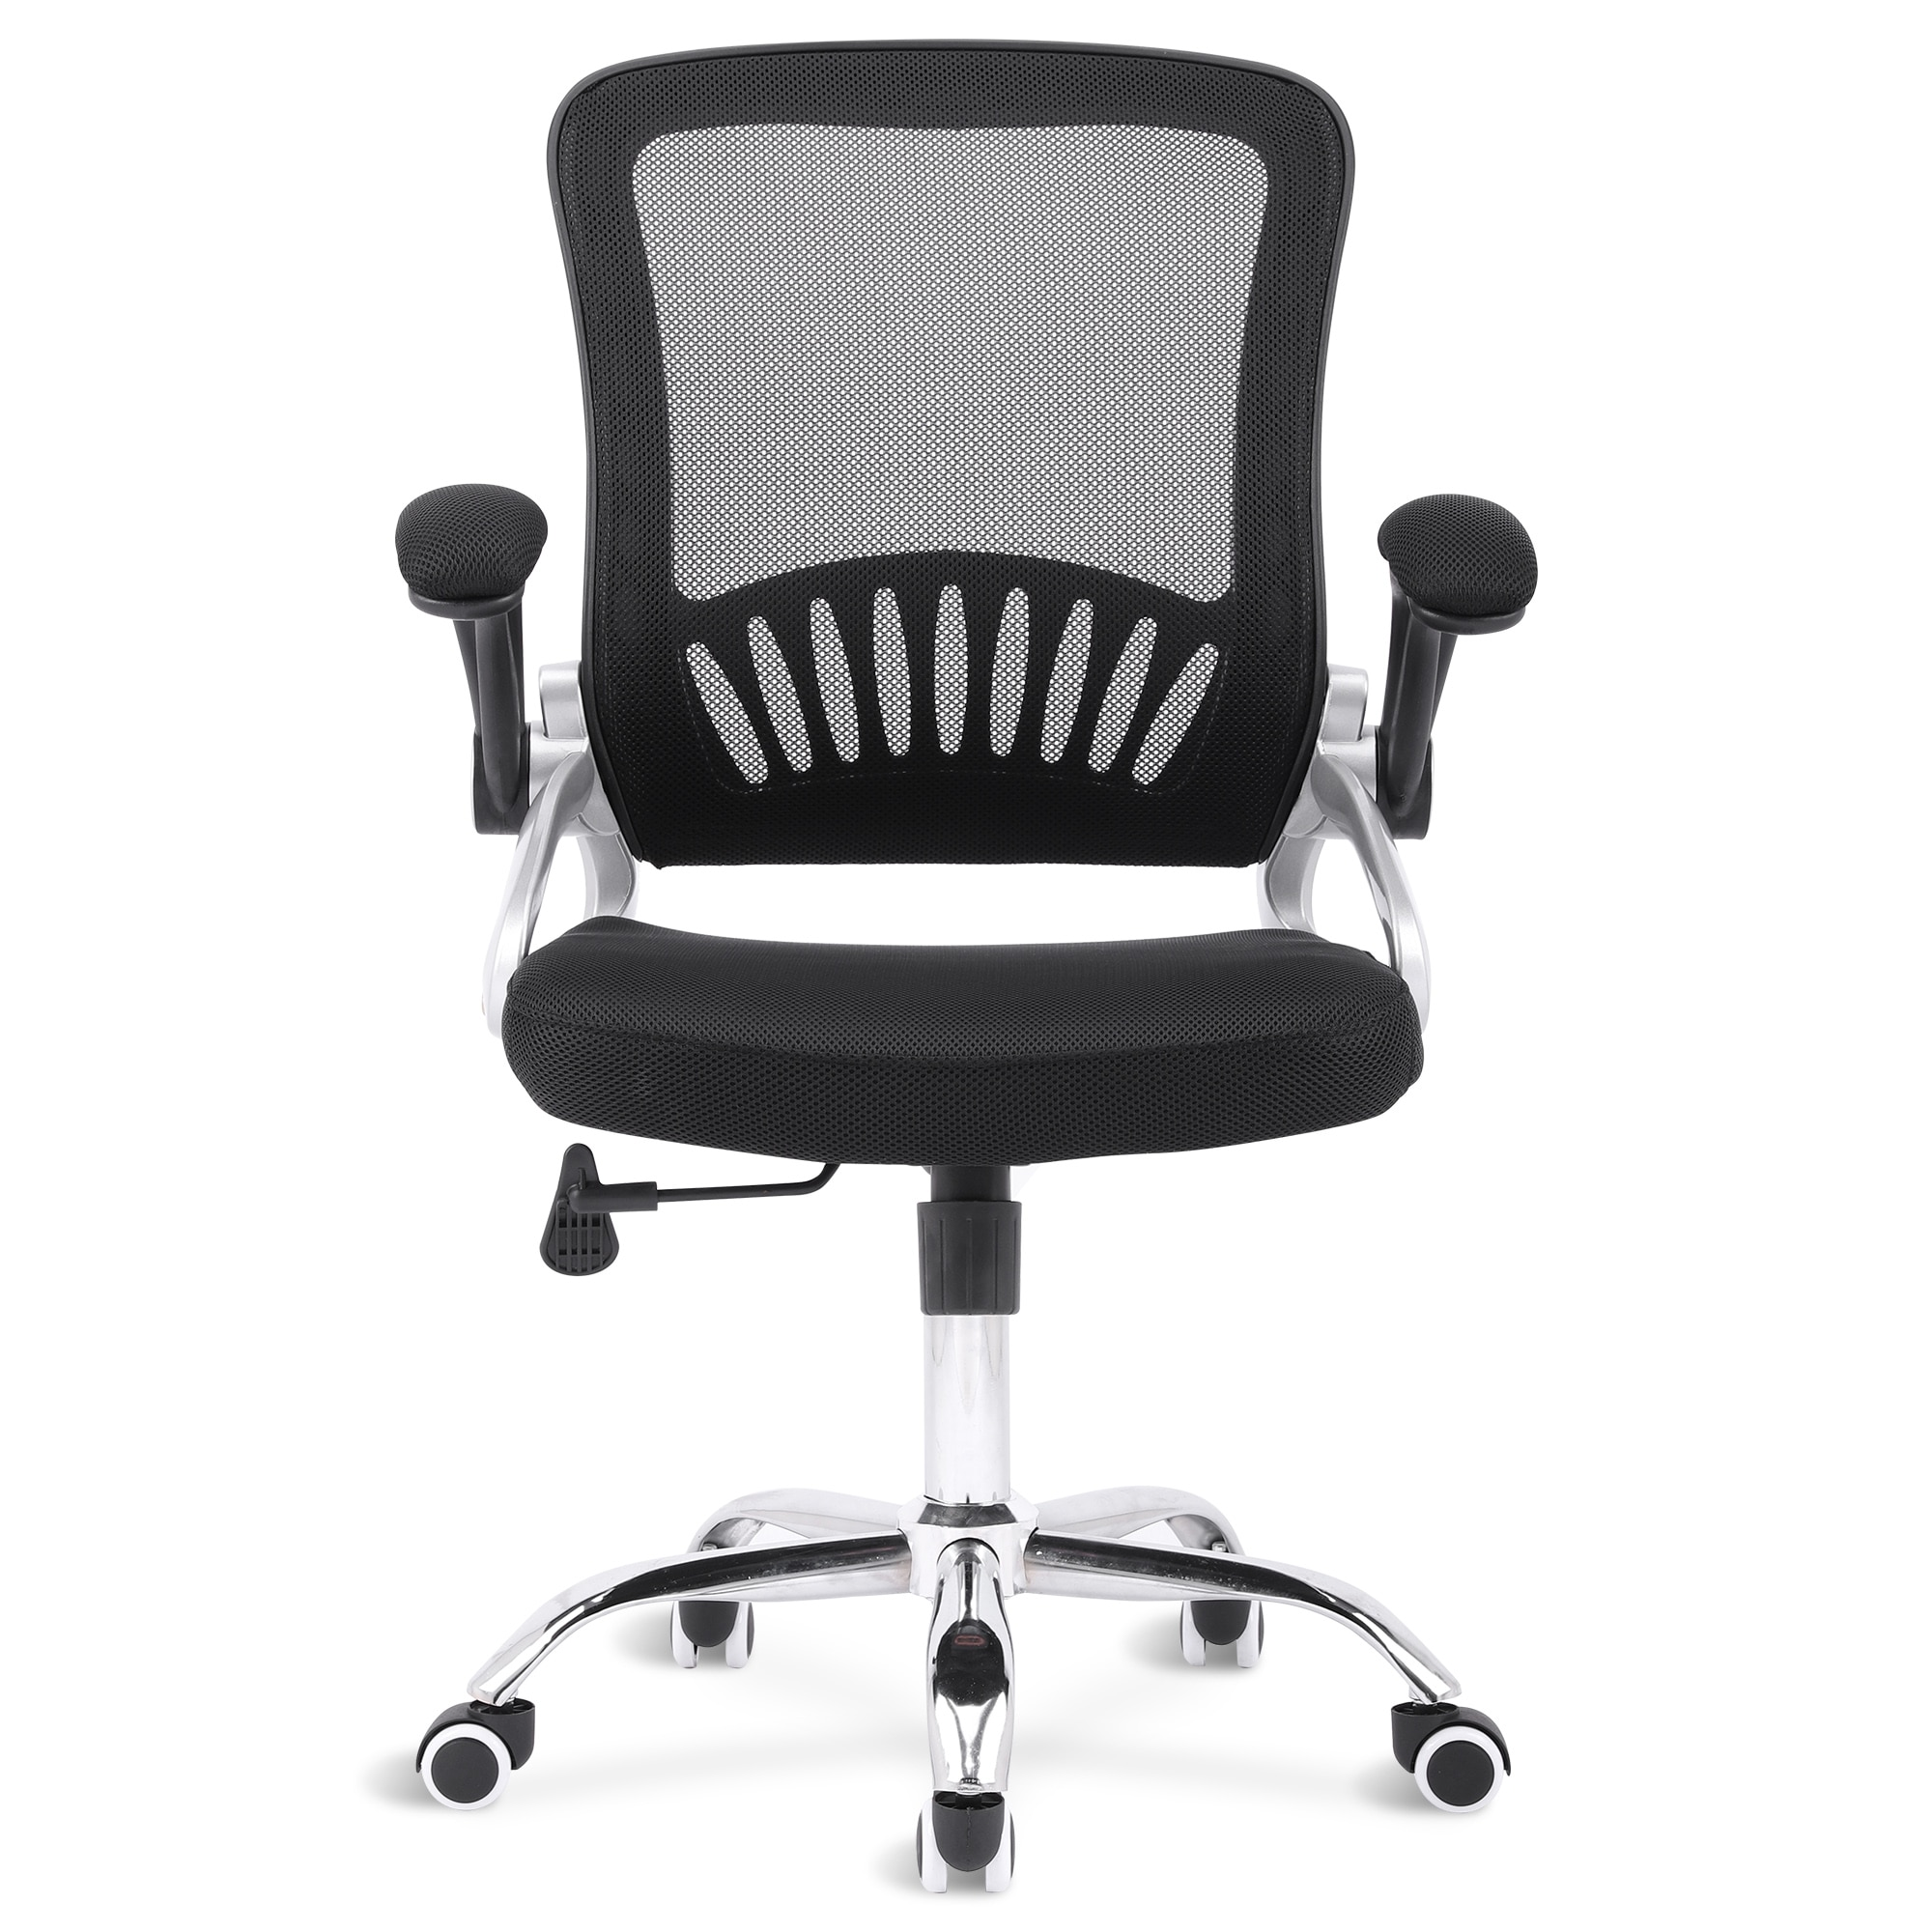 H9eed153c96924d329eb73e7b5ef257d4m - Sigtua Swivel Office Chair Height-adjustable Desk Chair Breathable PC Chair Comfortable Ergonomic Executive Computer Chair Black